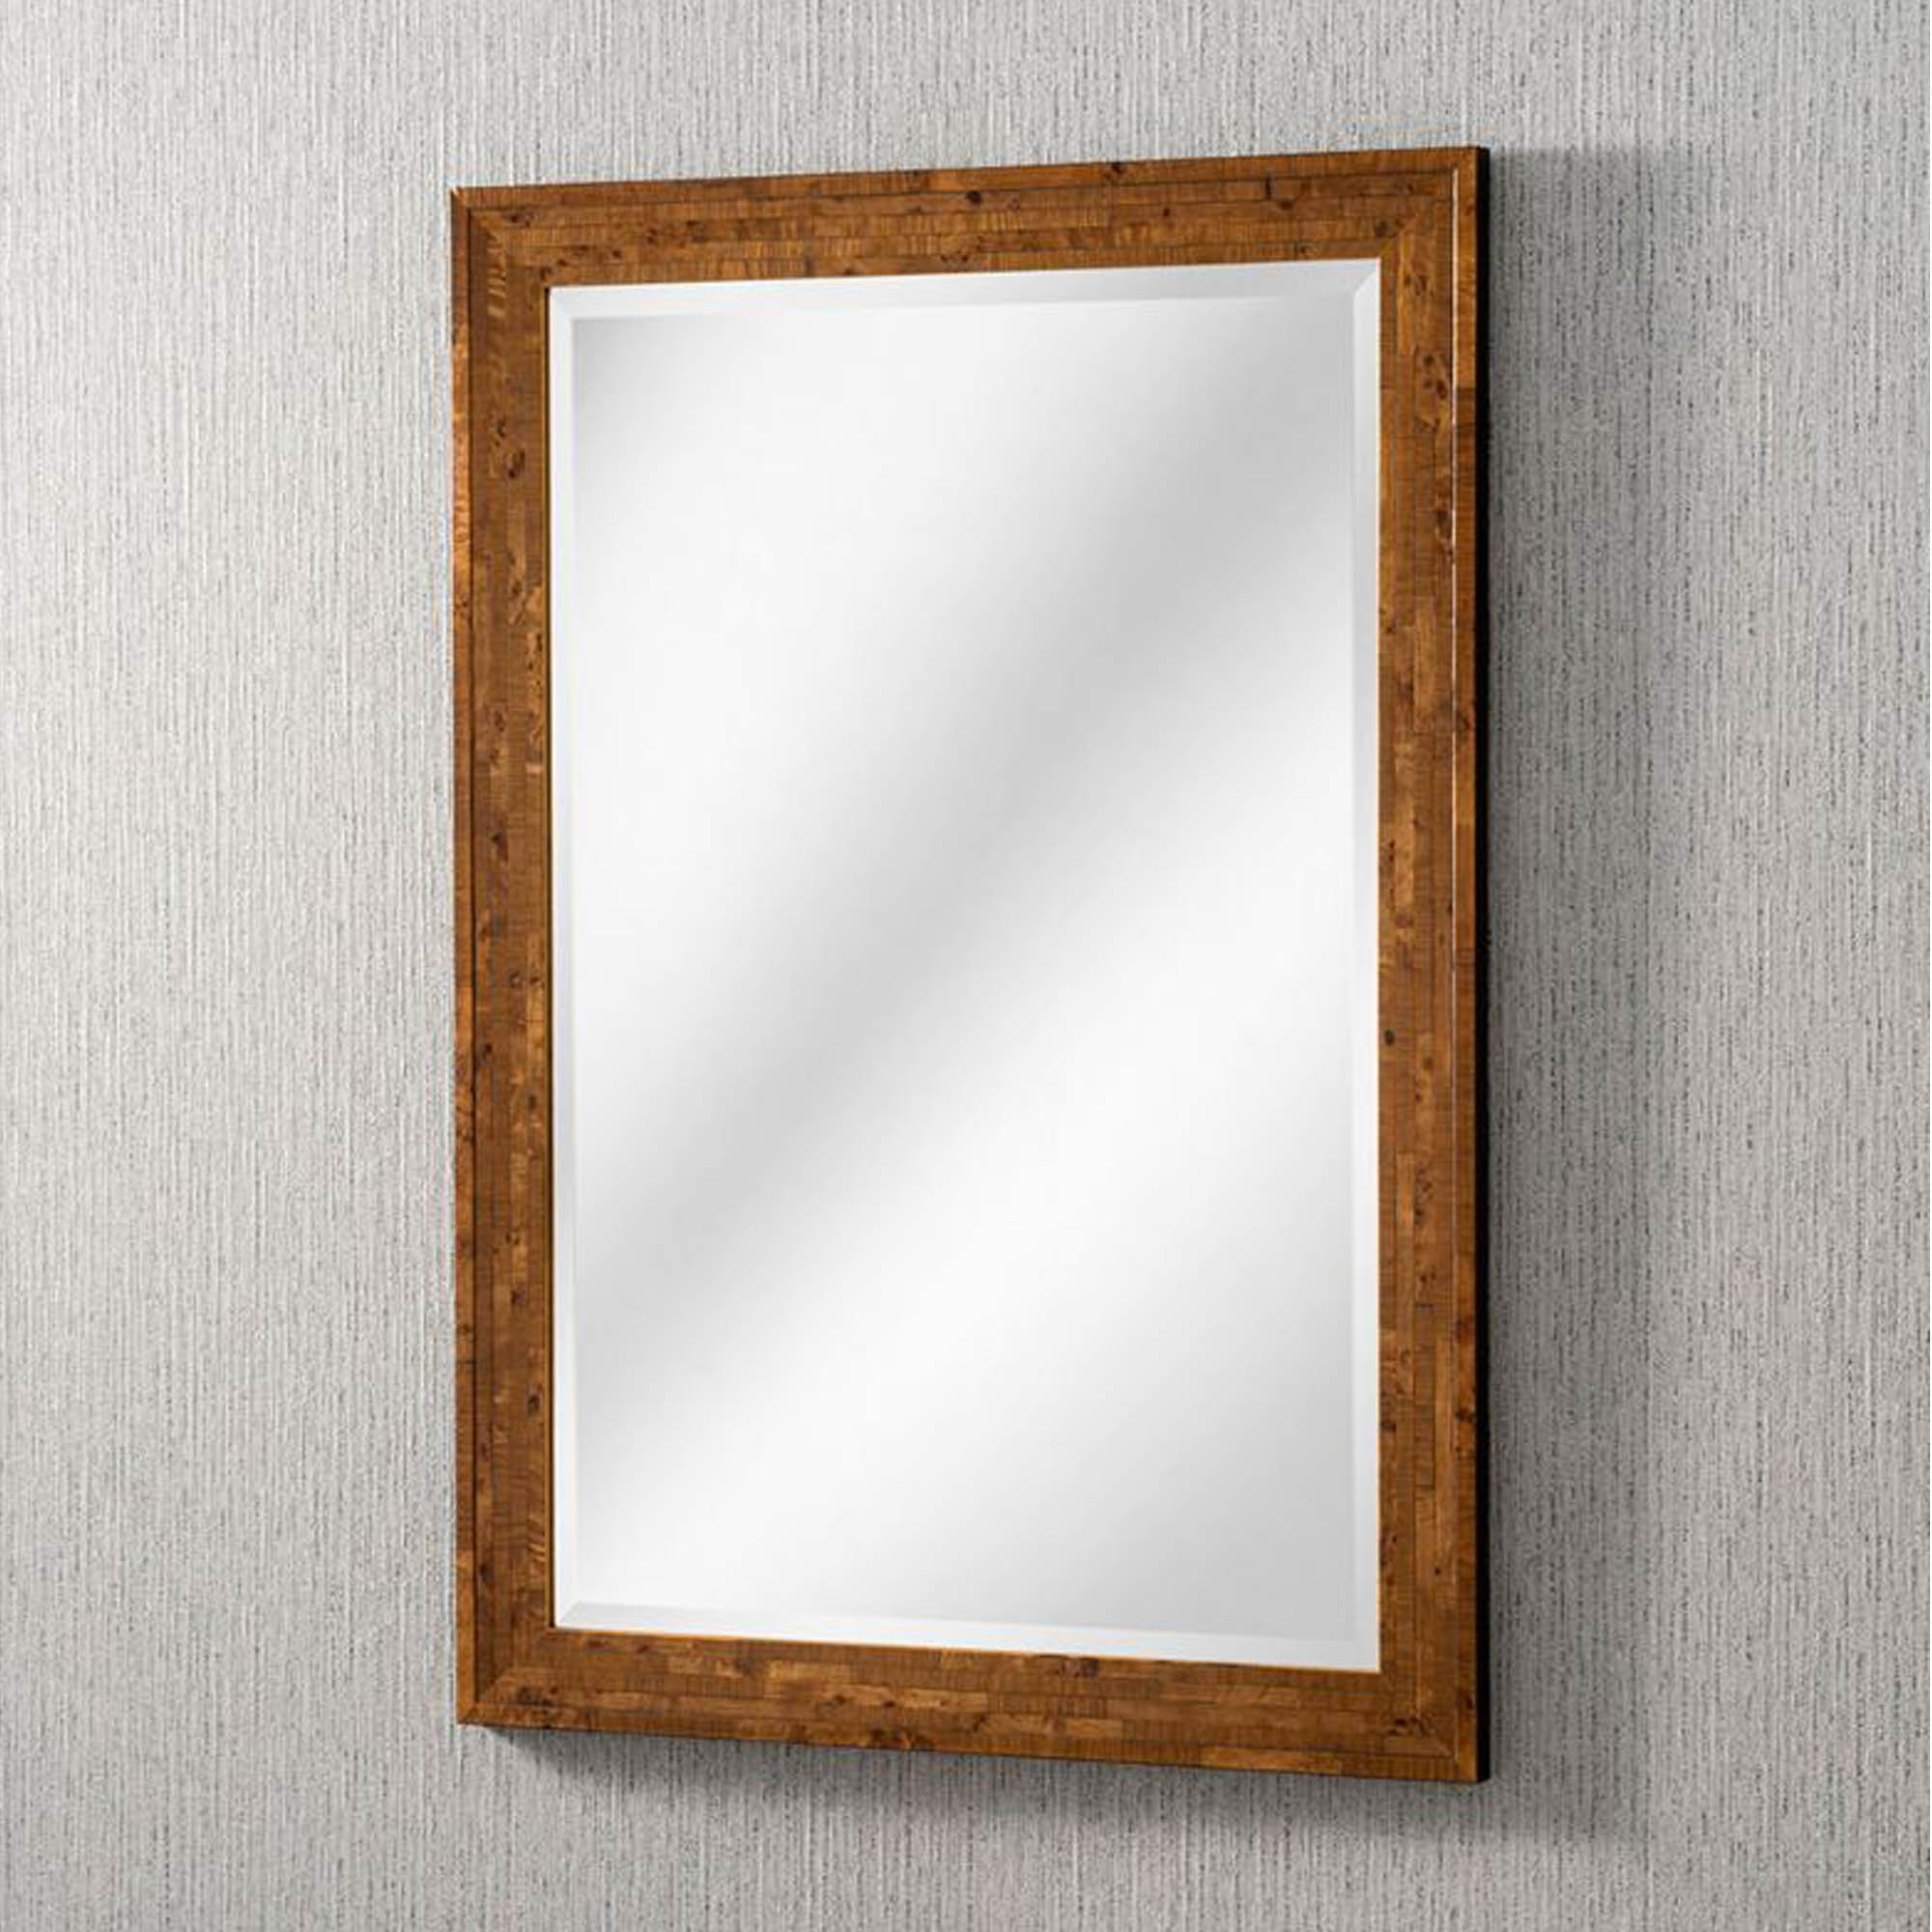 Well Liked Wood Wall Mirrors Regarding Reclaimed Wood Rectangular Wall Mirror (View 15 of 20)